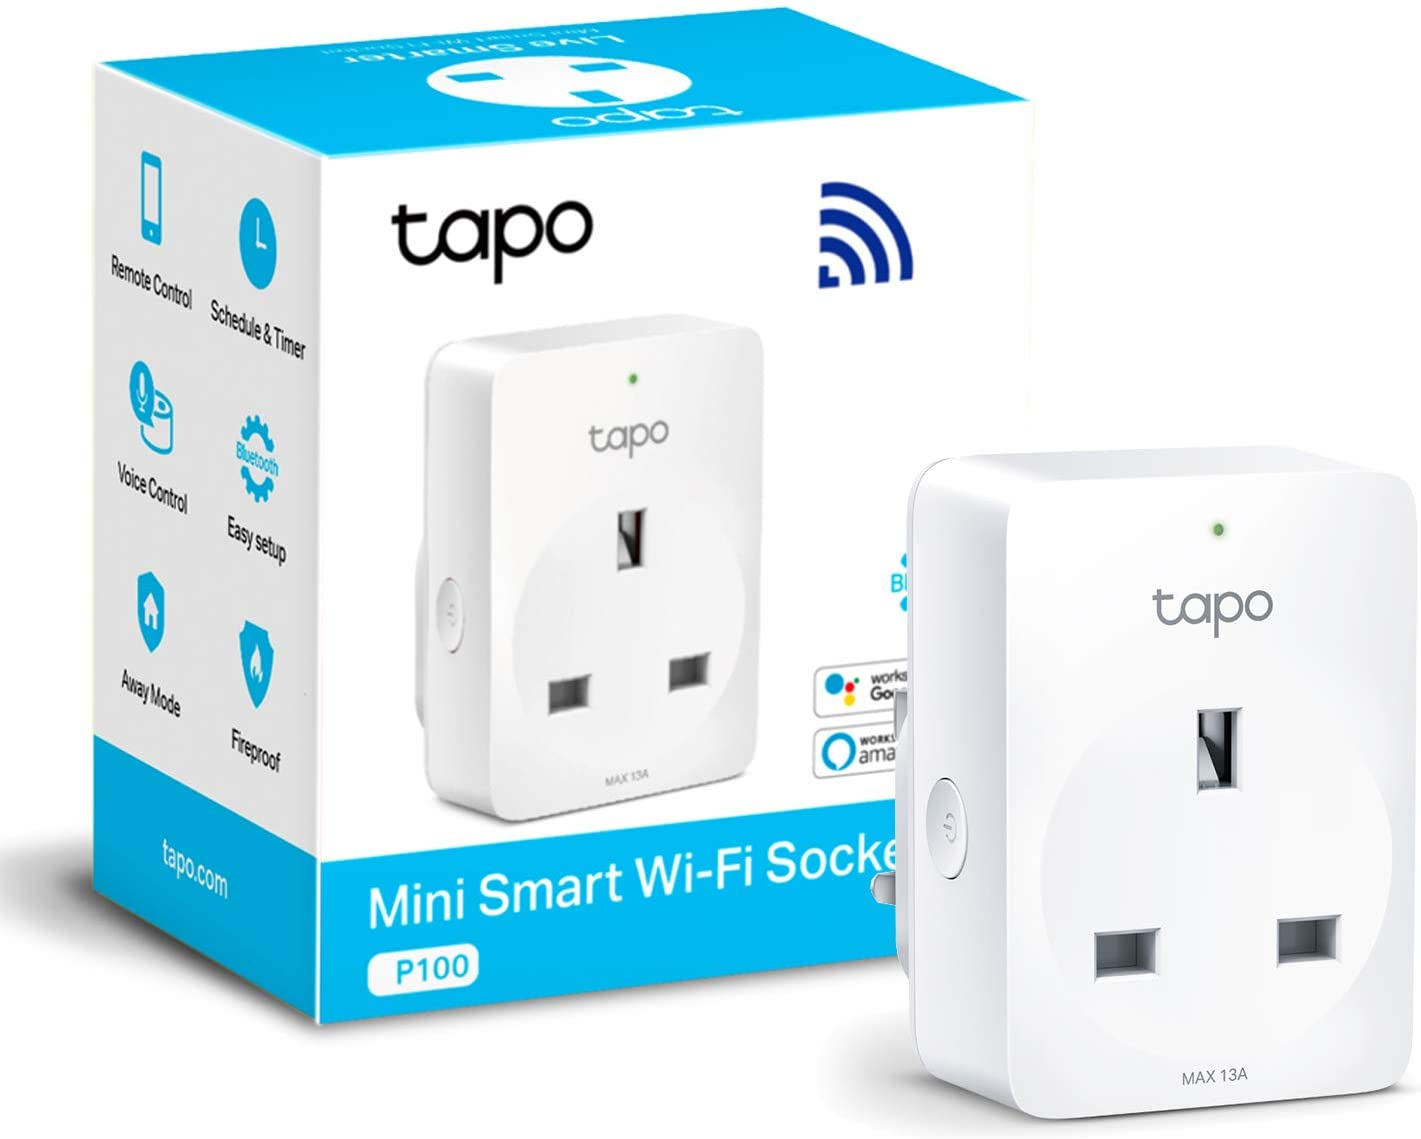 TP-Link Tapo Smart Plug Wi-Fi Outlet, Works with Amazon Alexa (Echo and Echo Dot), Google Home 31% OFF £8.99 @ Amazon